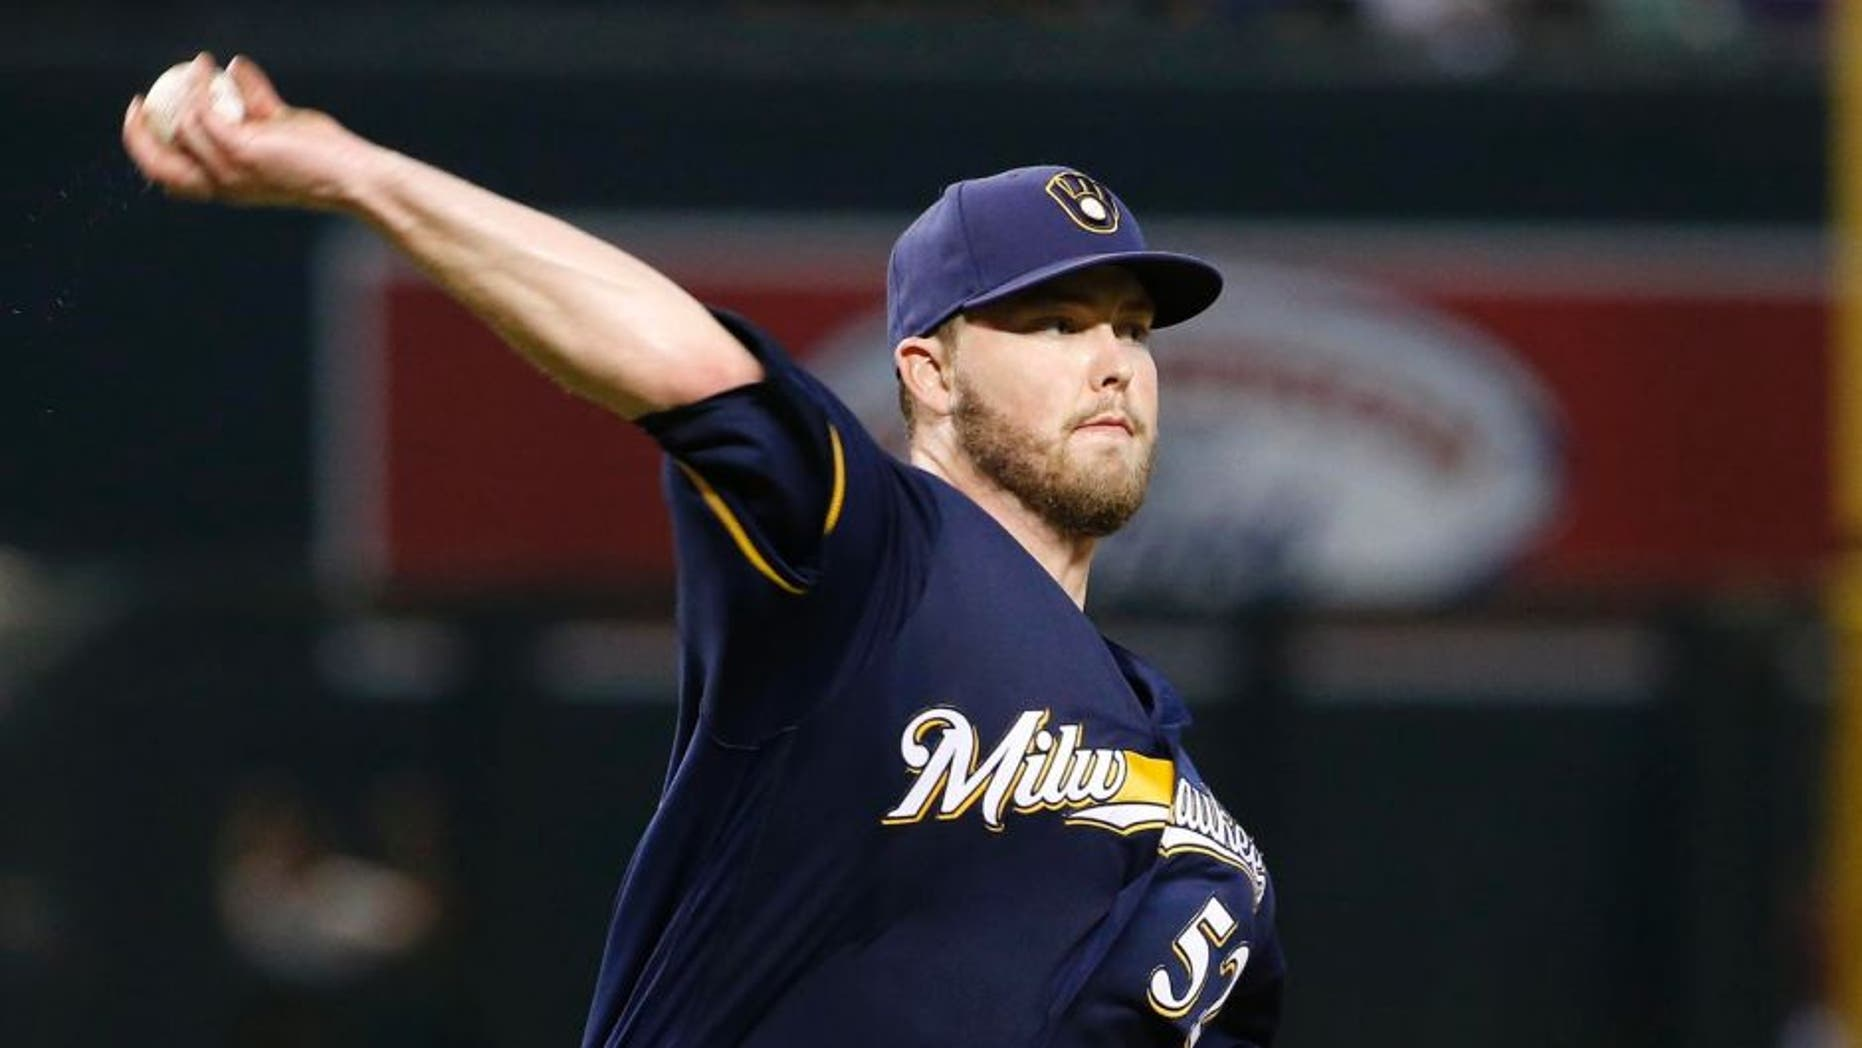 The Milwaukee Brewers' Jimmy Nelson makes a pickoff throw during the fourth inning against the Arizona Diamondbacks on Sunday, Aug. 7, 2016, in Phoenix. The throw sailed over the head of first baseman Andy Wilkins and Diamondbacks runners Jean Segura advanced to third base and Paul Goldschmidt advanced to second base.